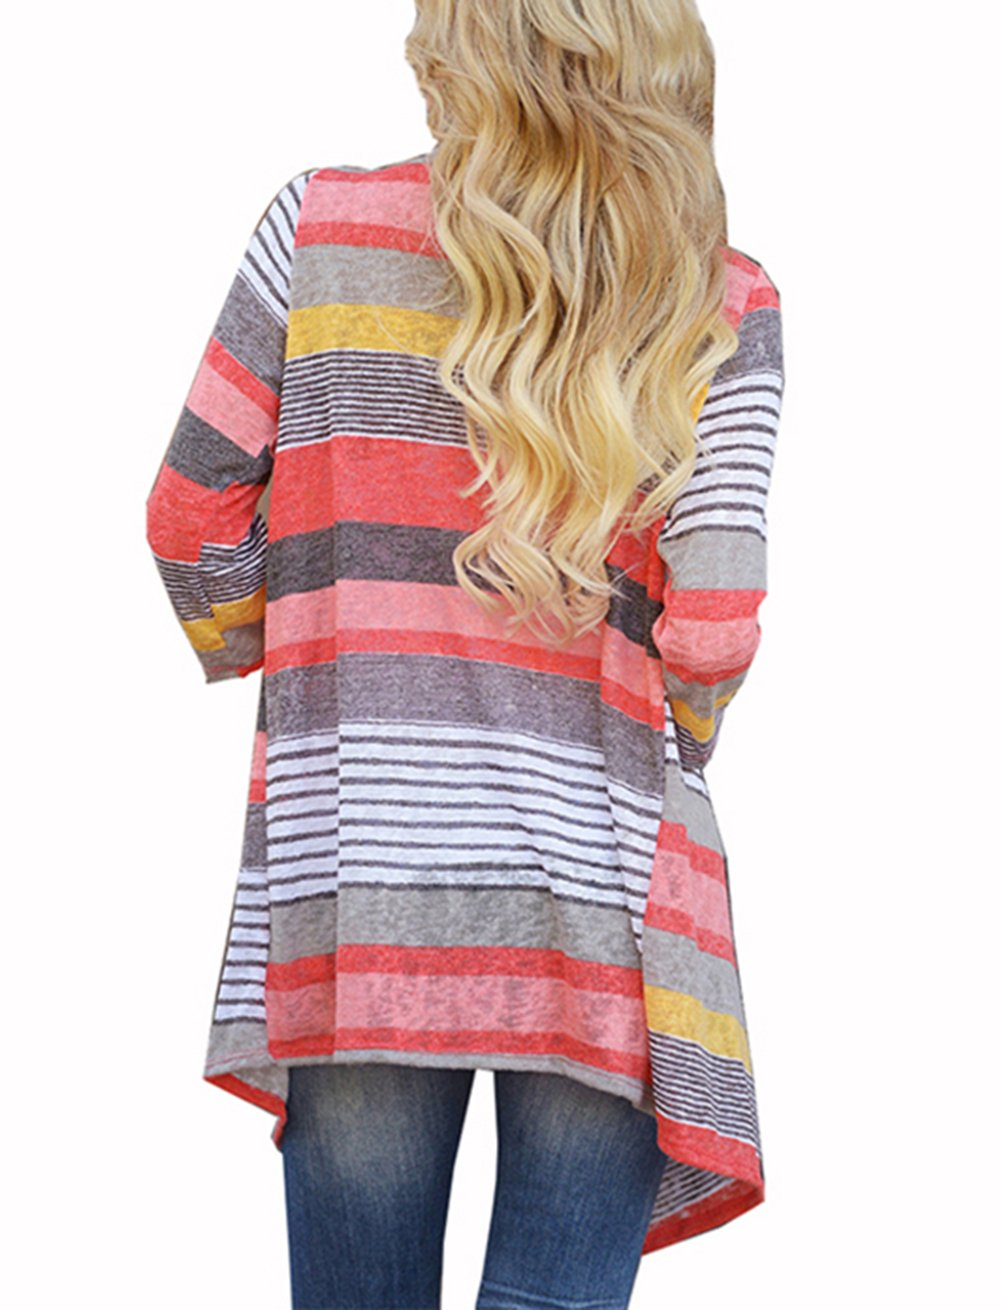 3/4 Long Sleeve Plus Size Sweater Cardigans for Womans Coverup Bikini Beach Wear Red Large by VAYAGER (Image #3)